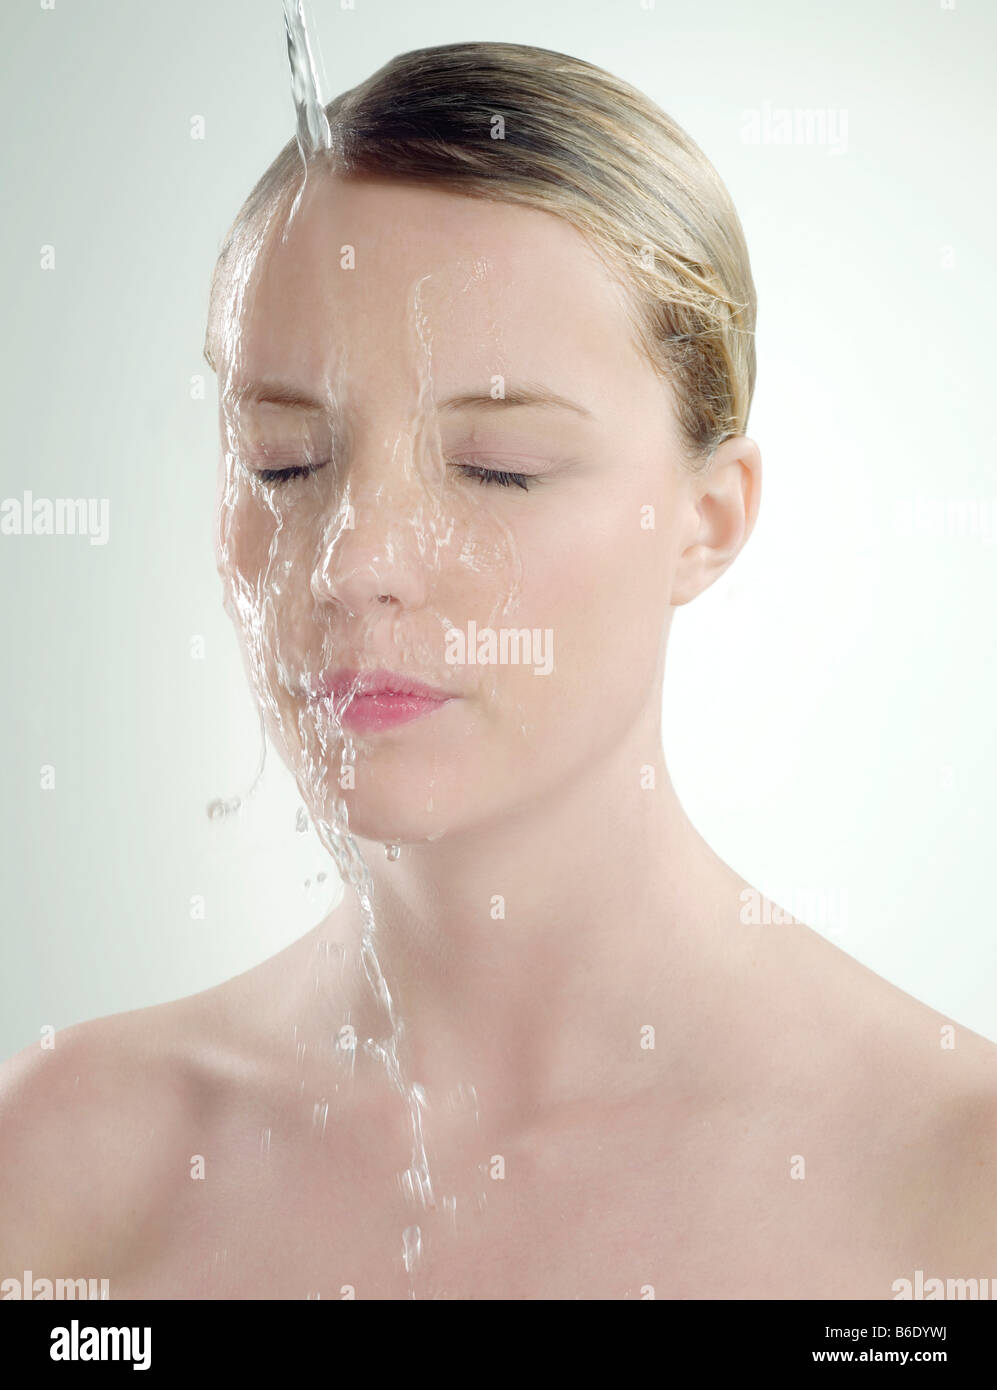 Woman with wet skin. Woman with water pouring down her face. - Stock Image